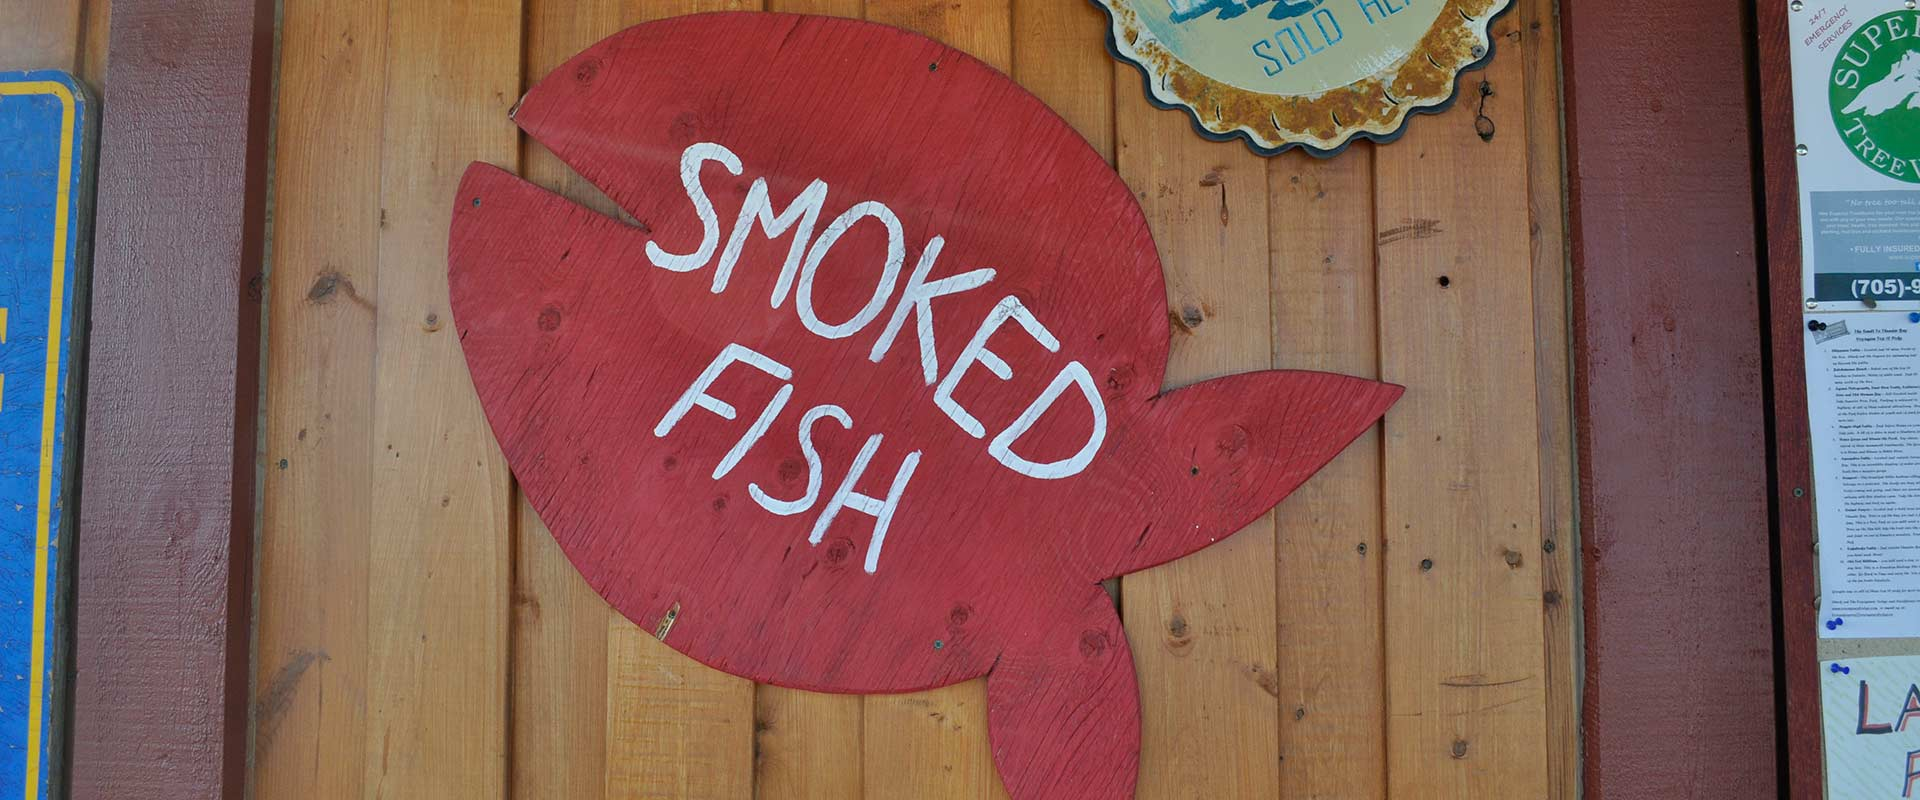 smoked-fish-header